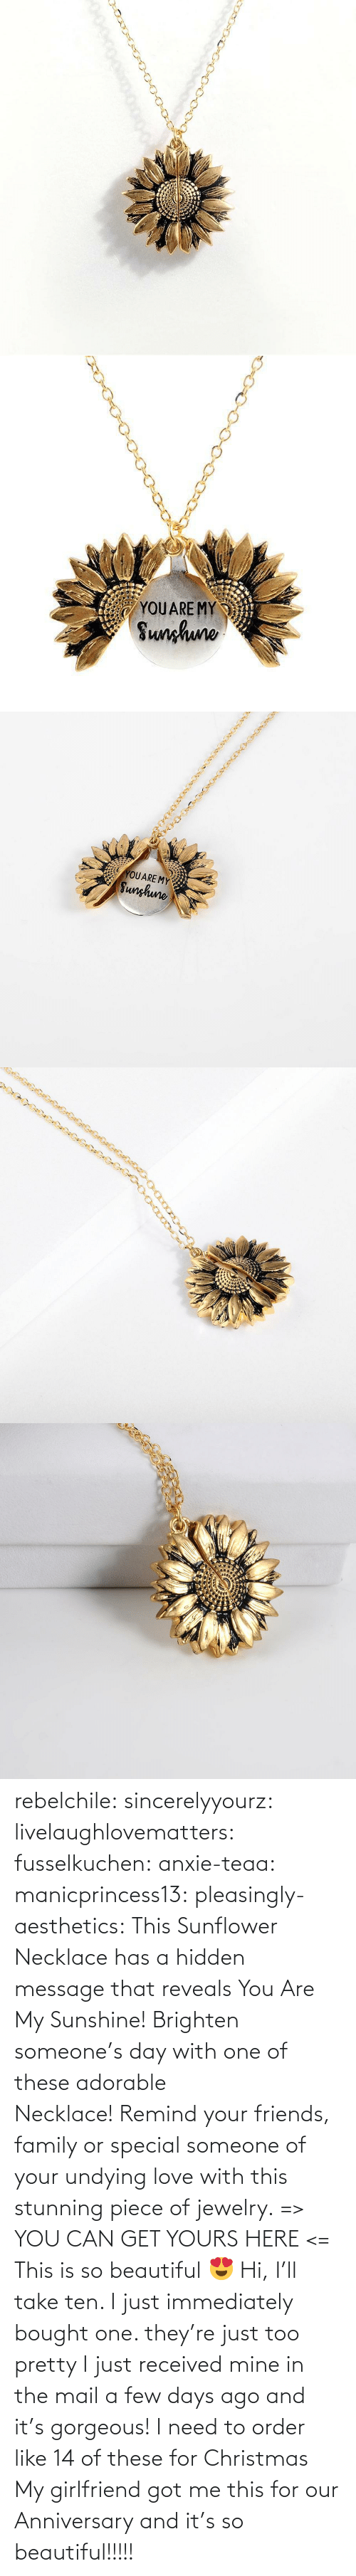 Beautiful, Christmas, and Family: YOUARE MY  Sunhuno   YOUARE MY  Sunghune rebelchile:  sincerelyyourz:  livelaughlovematters:  fusselkuchen:  anxie-teaa:   manicprincess13:   pleasingly-aesthetics:  This Sunflower Necklace has a hidden message that reveals You Are My Sunshine! Brighten someone's day with one of these adorable Necklace!Remind your friends, family or special someone of your undying love with this stunning piece of jewelry. => YOU CAN GET YOURS HERE <=   This is so beautiful 😍    Hi, I'll take ten.    I just immediately bought one. they're just too pretty   I just received mine in the mail a few days ago and it's gorgeous!   I need to order like 14 of these for Christmas    My girlfriend got me this for our Anniversary and it's so beautiful!!!!!